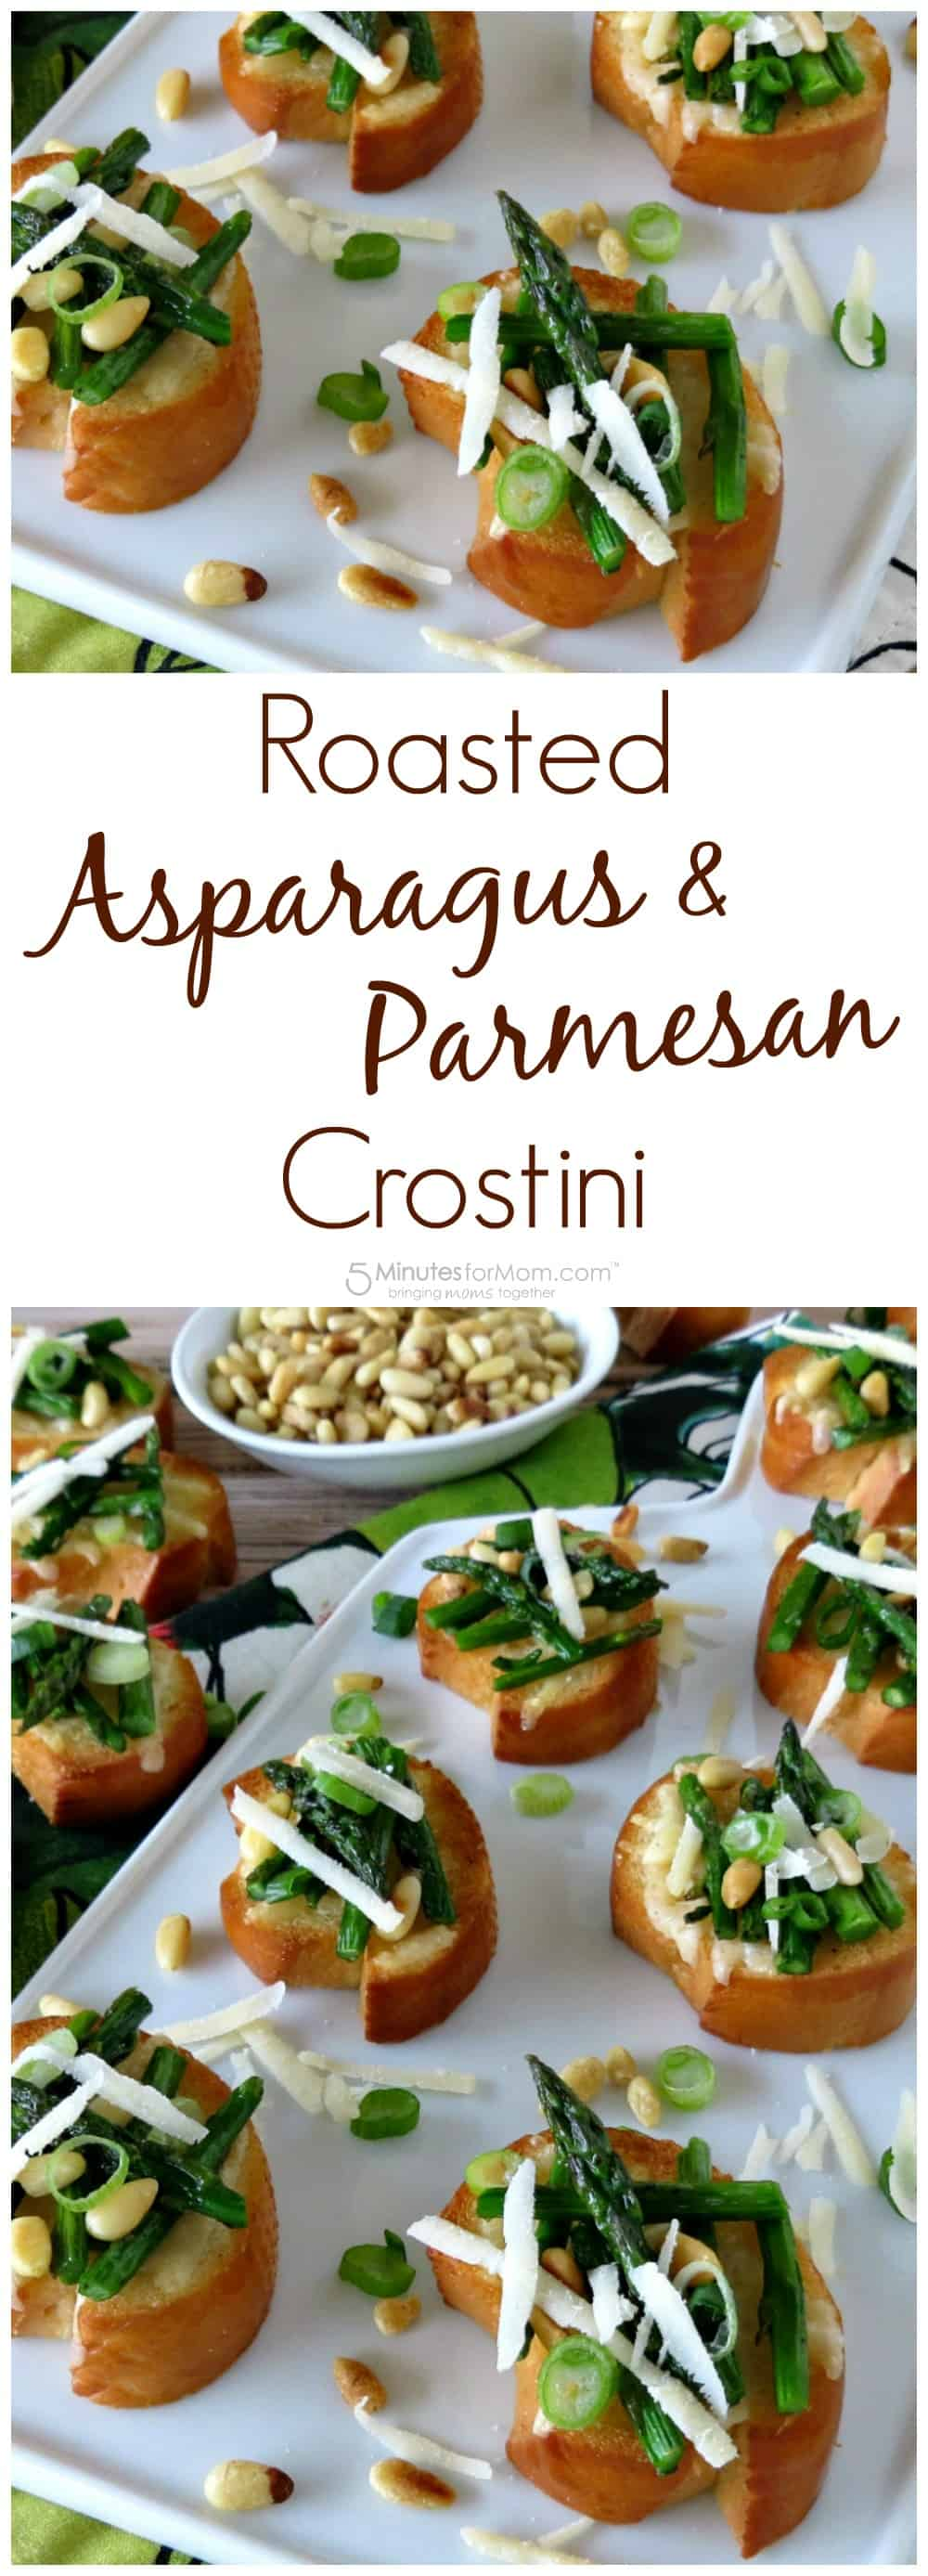 Roasted Asparagus and Parmesan Crostini - Appetizer Recipe